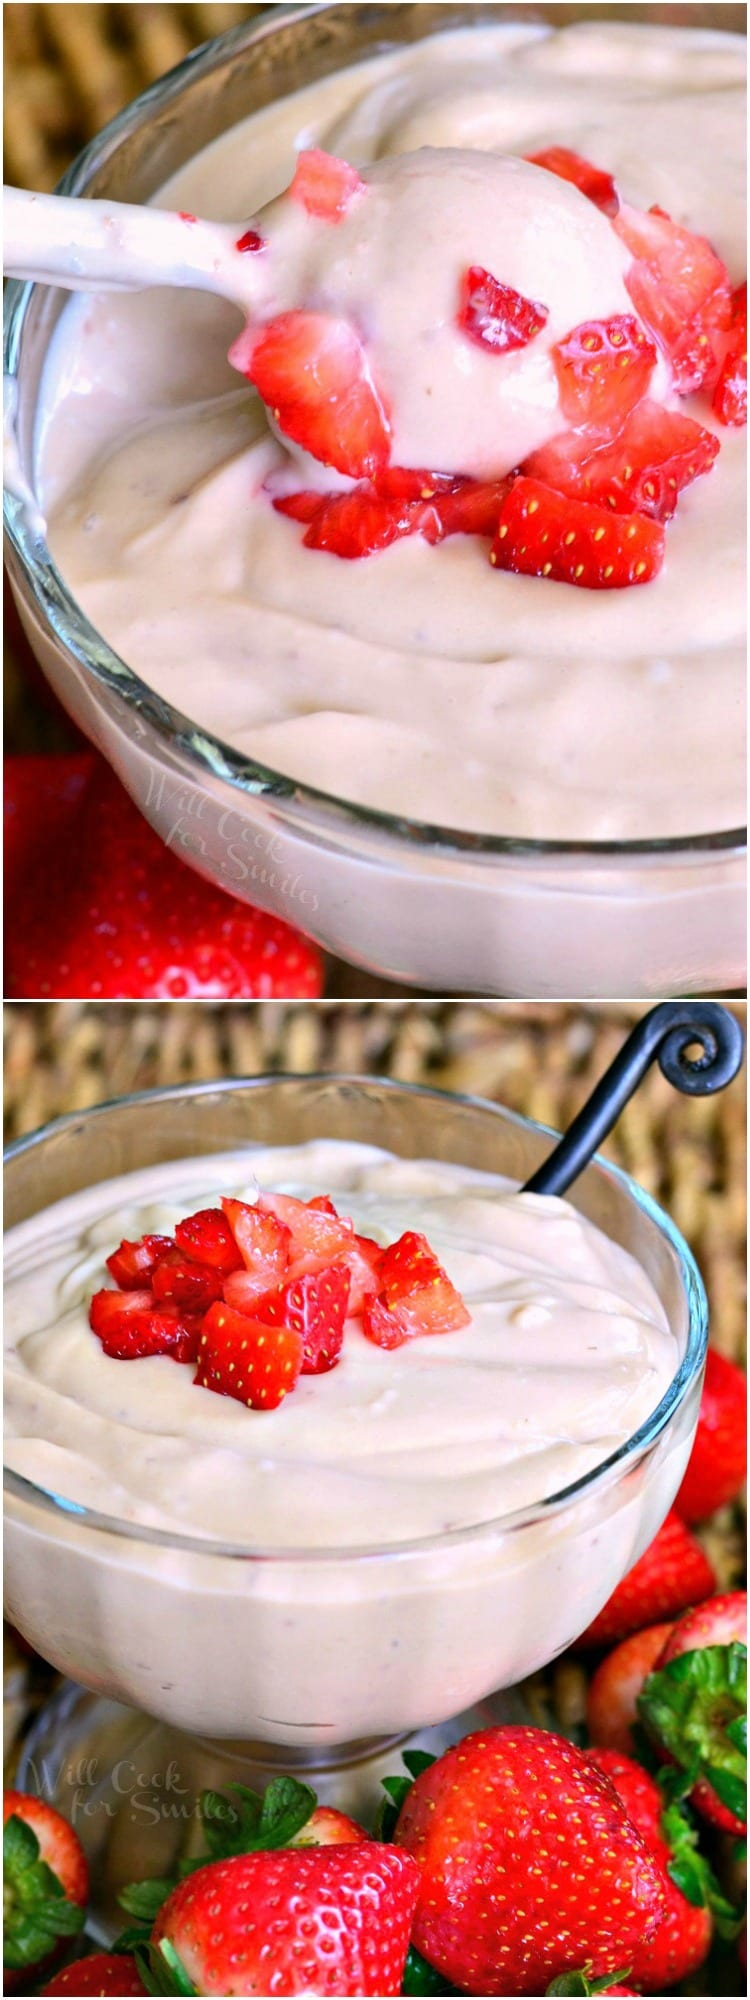 Homemade Strawberry Pudding | from willcookforsmiles.com #desserts #pudding